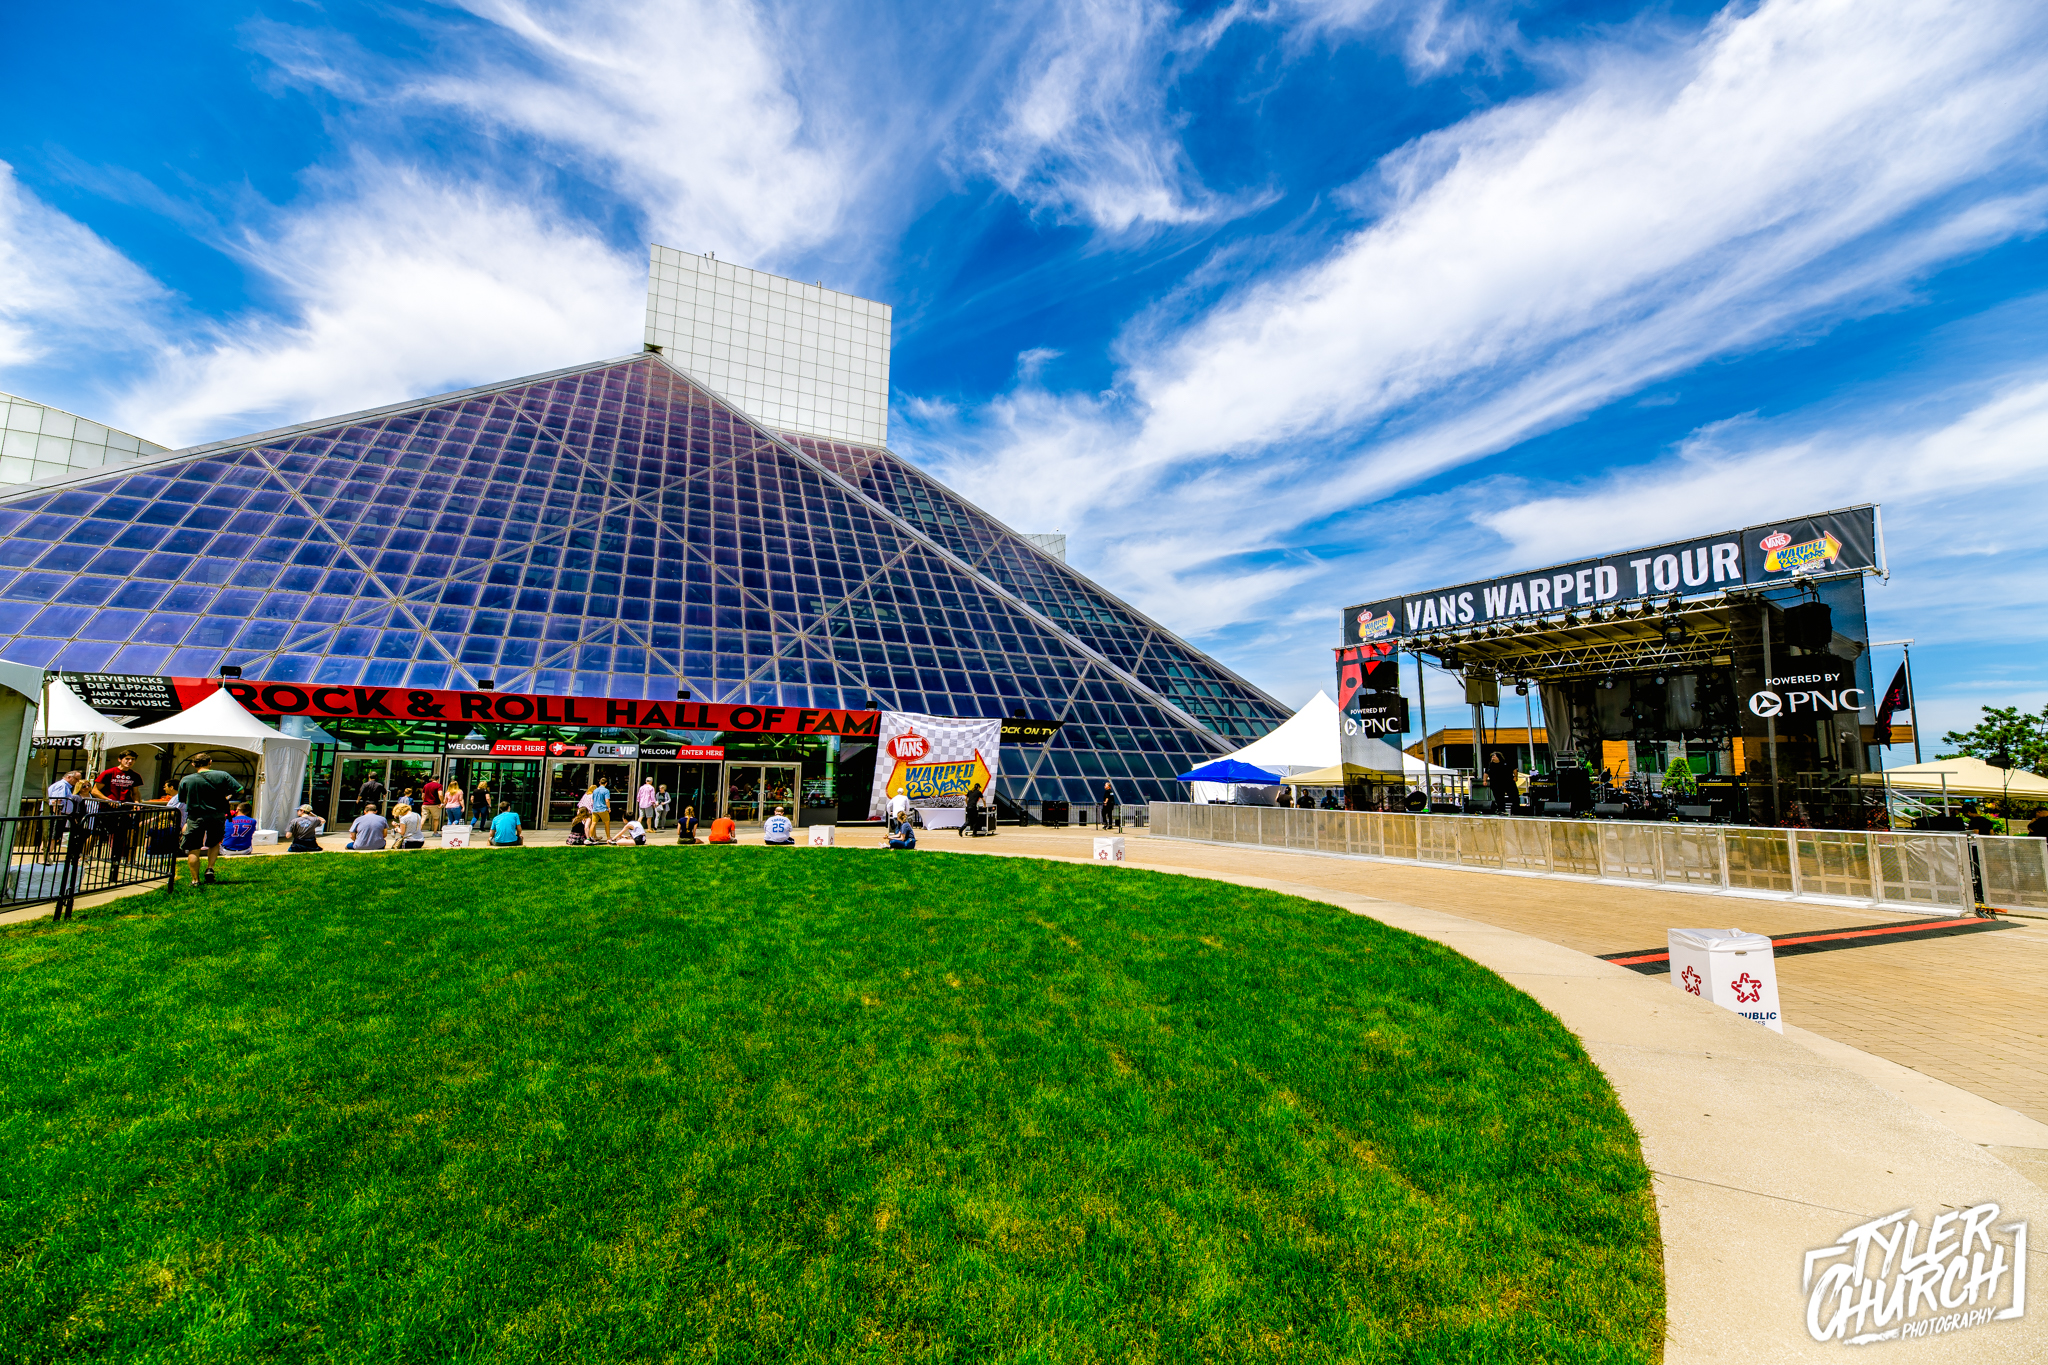 The Rock & Roll Hall of Fame site of the Vans Warped Tour 25th Anniversary show